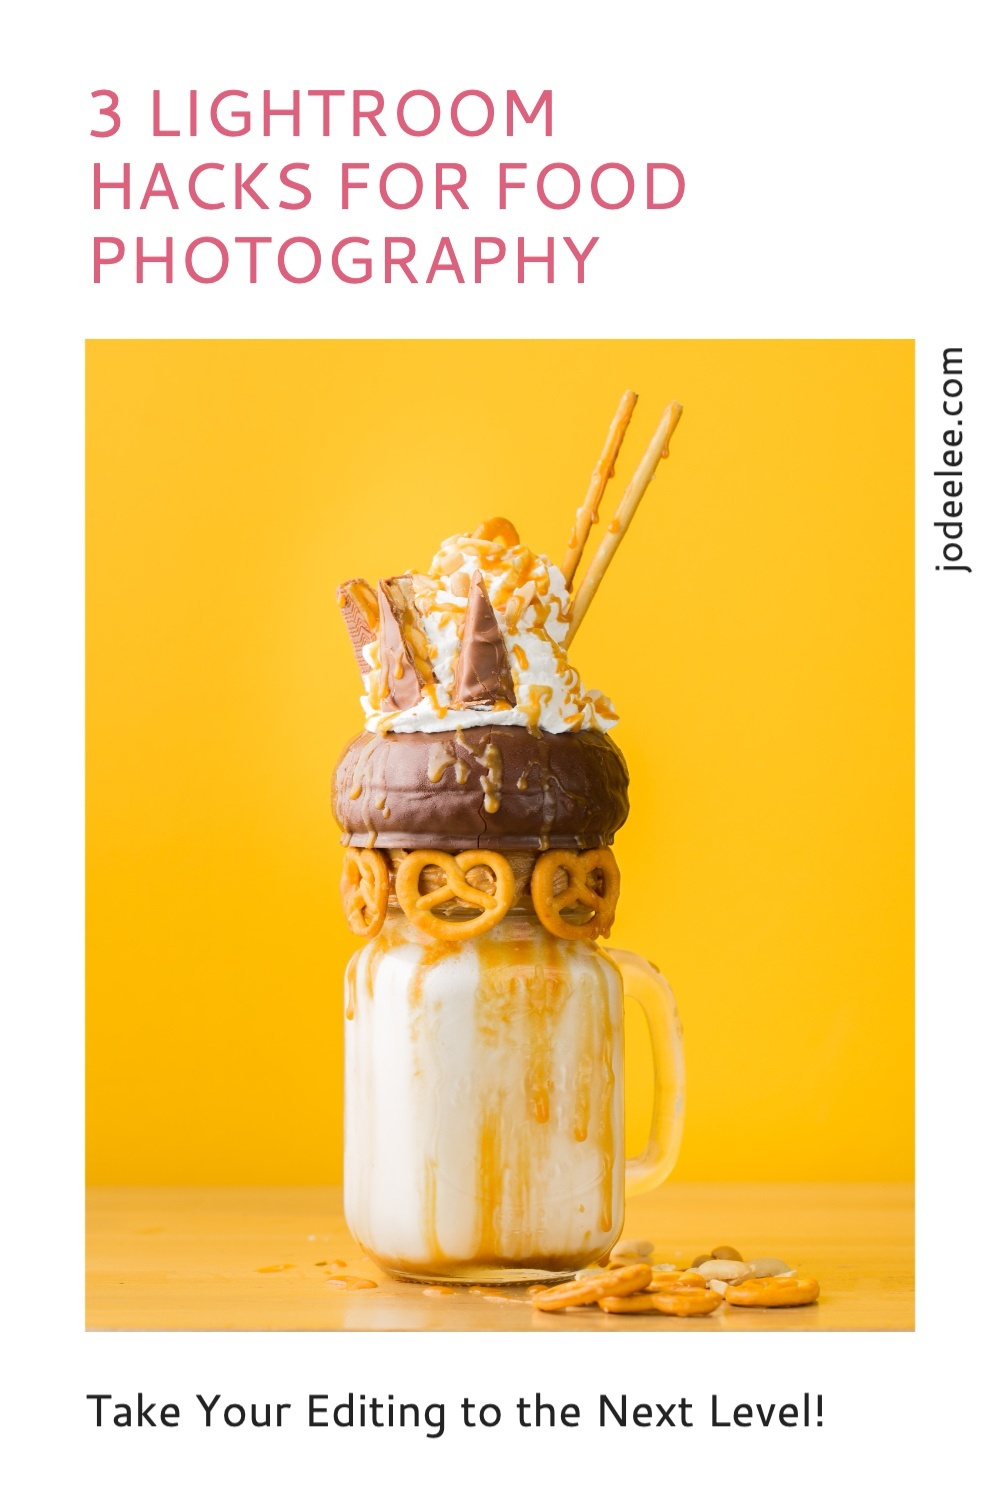 Photography, Food and drink Pinterest Pin image created by Tailwind using a Tailwind Create design template in 2021.